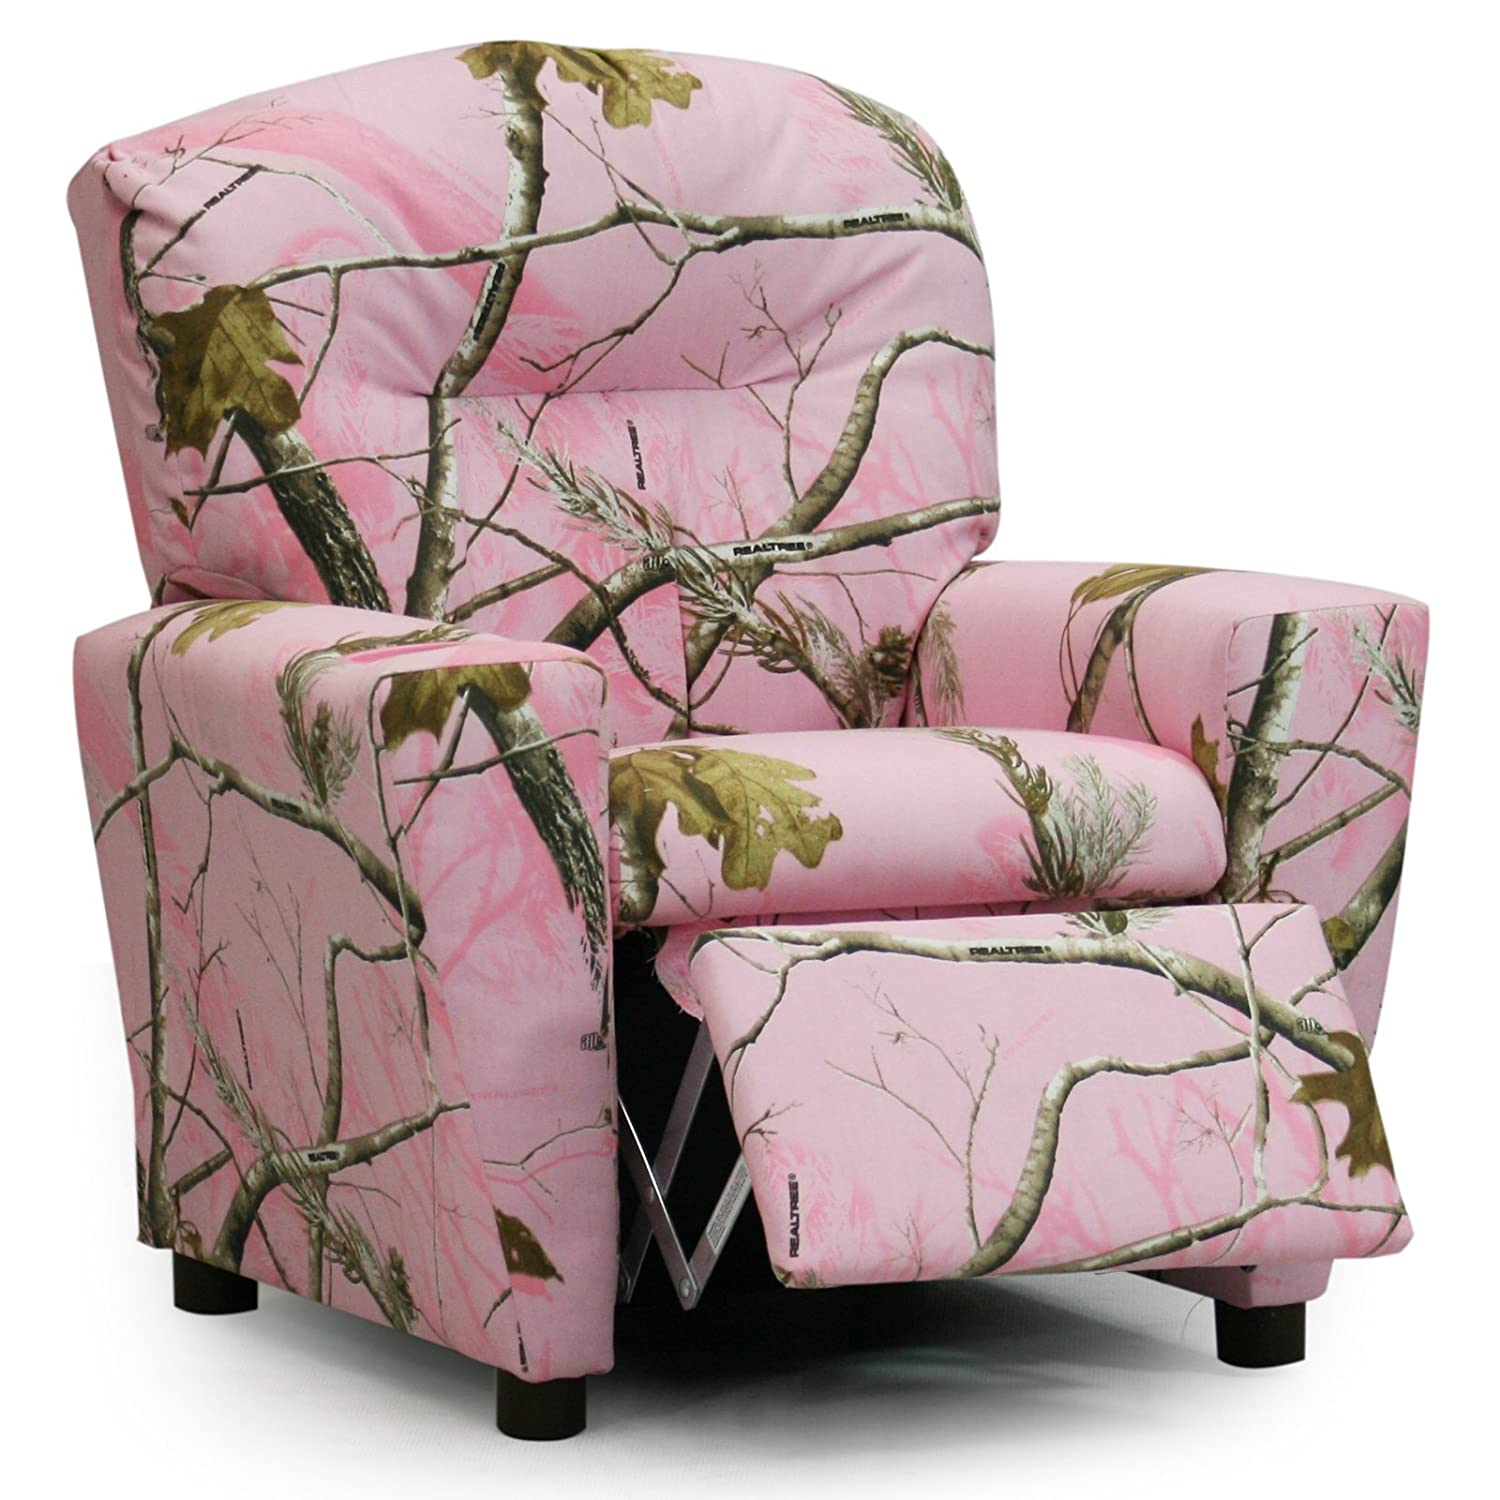 Lovely Amazon.com: Kidz World Real Tree Camouflage Kids Recliner: Home U0026 Kitchen